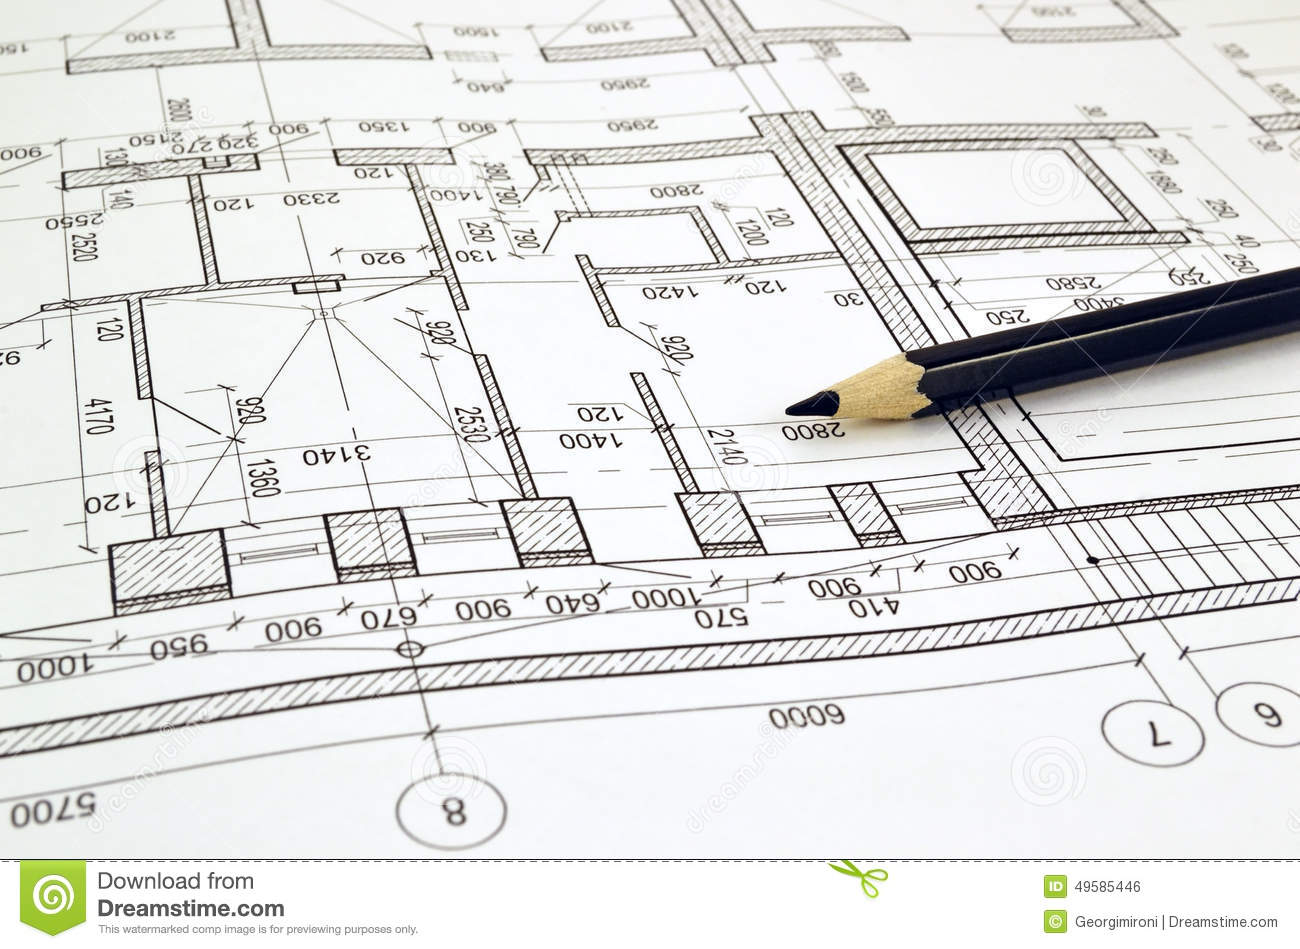 Charpente Industrielle Tarn Drawing A Floor Plan Of The Building Stock Photo Image